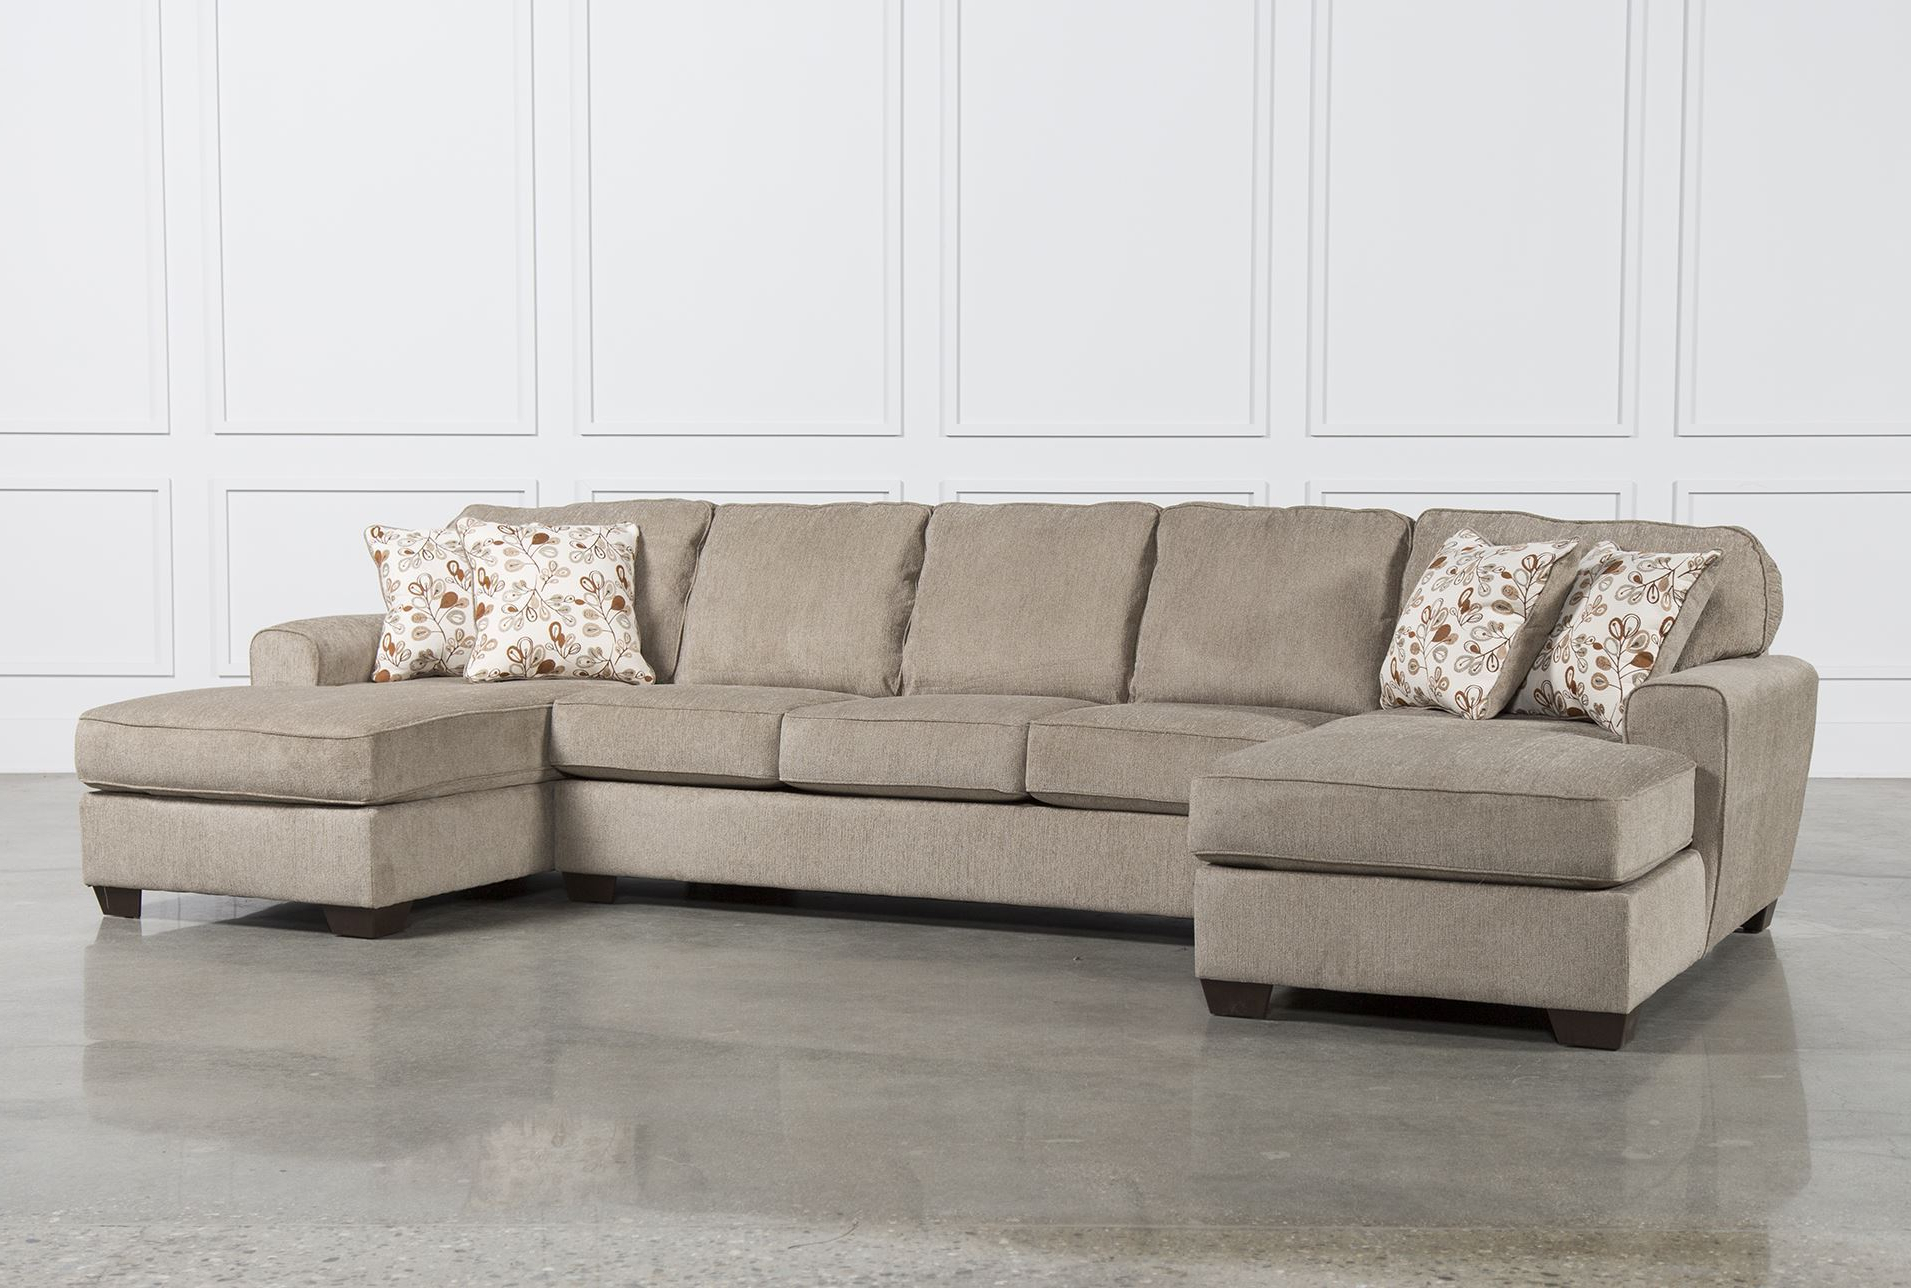 Fashionable Living Spaces Small Sectional Sofas – Sofa Design Ideas Intended For Avery 2 Piece Sectionals With Laf Armless Chaise (View 13 of 20)